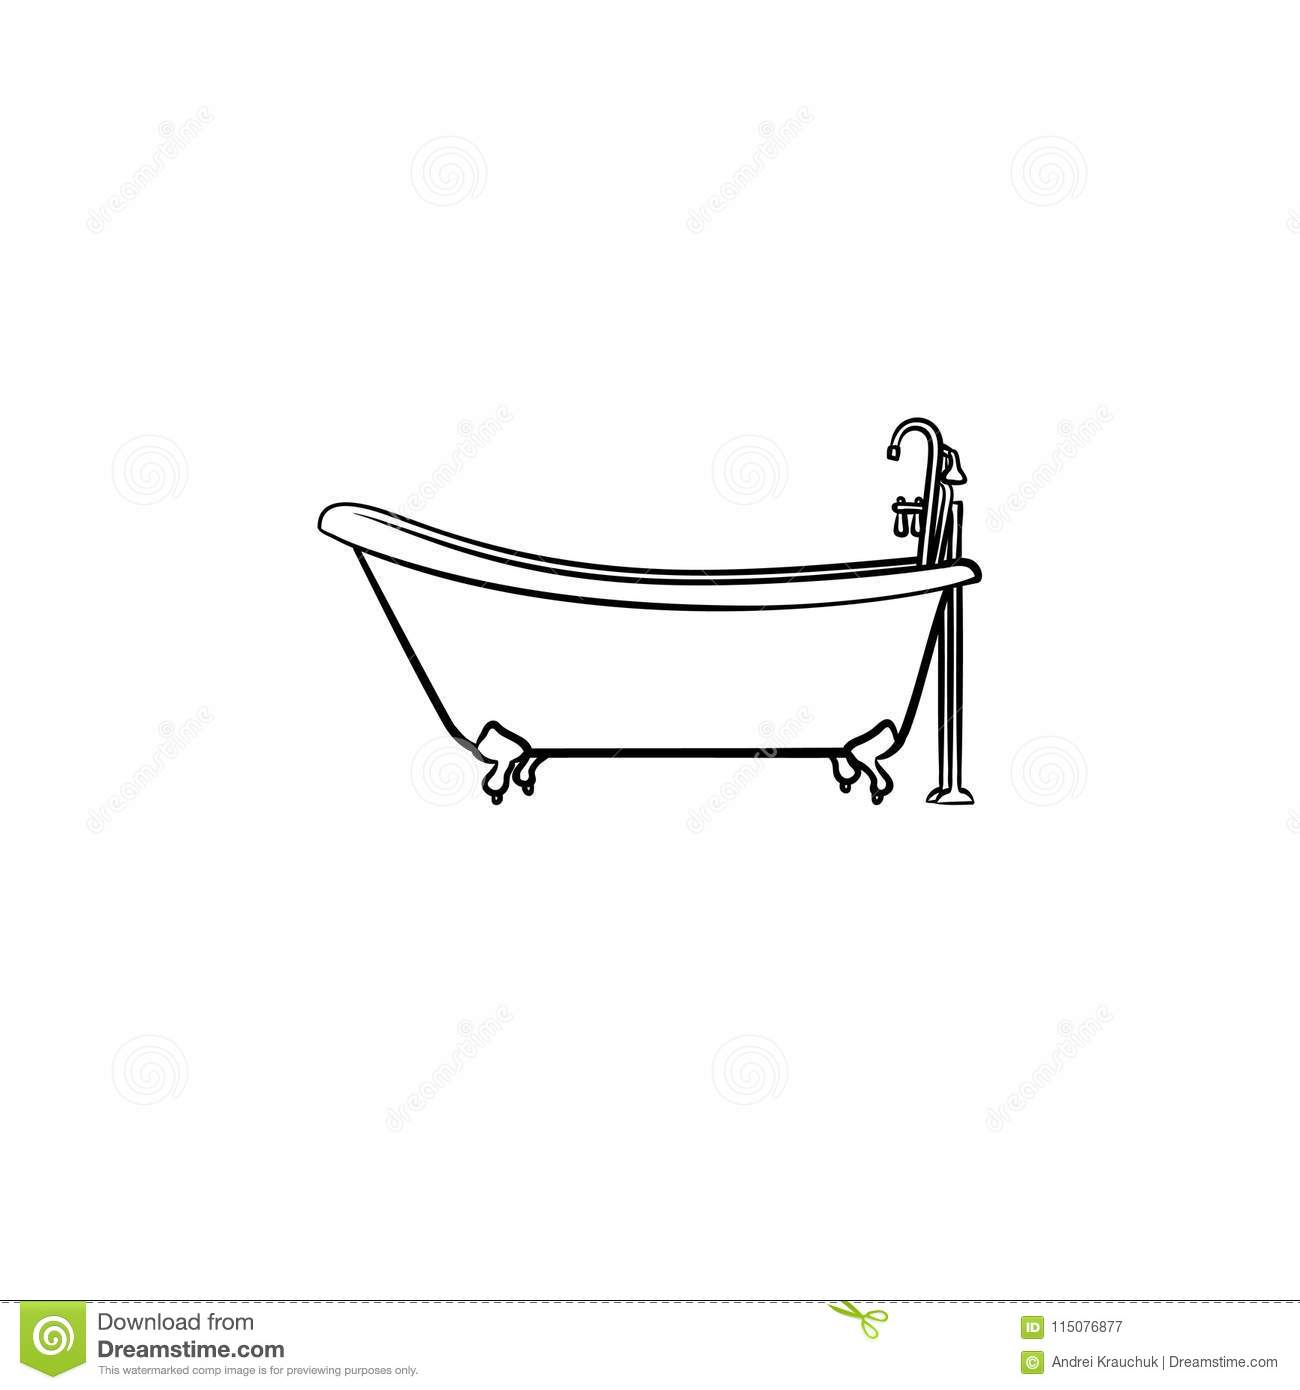 Bathtub With Tap Hand Drawn Sketch Icon Stock Vector Illustration Of Pictogram Hygiene 115076877